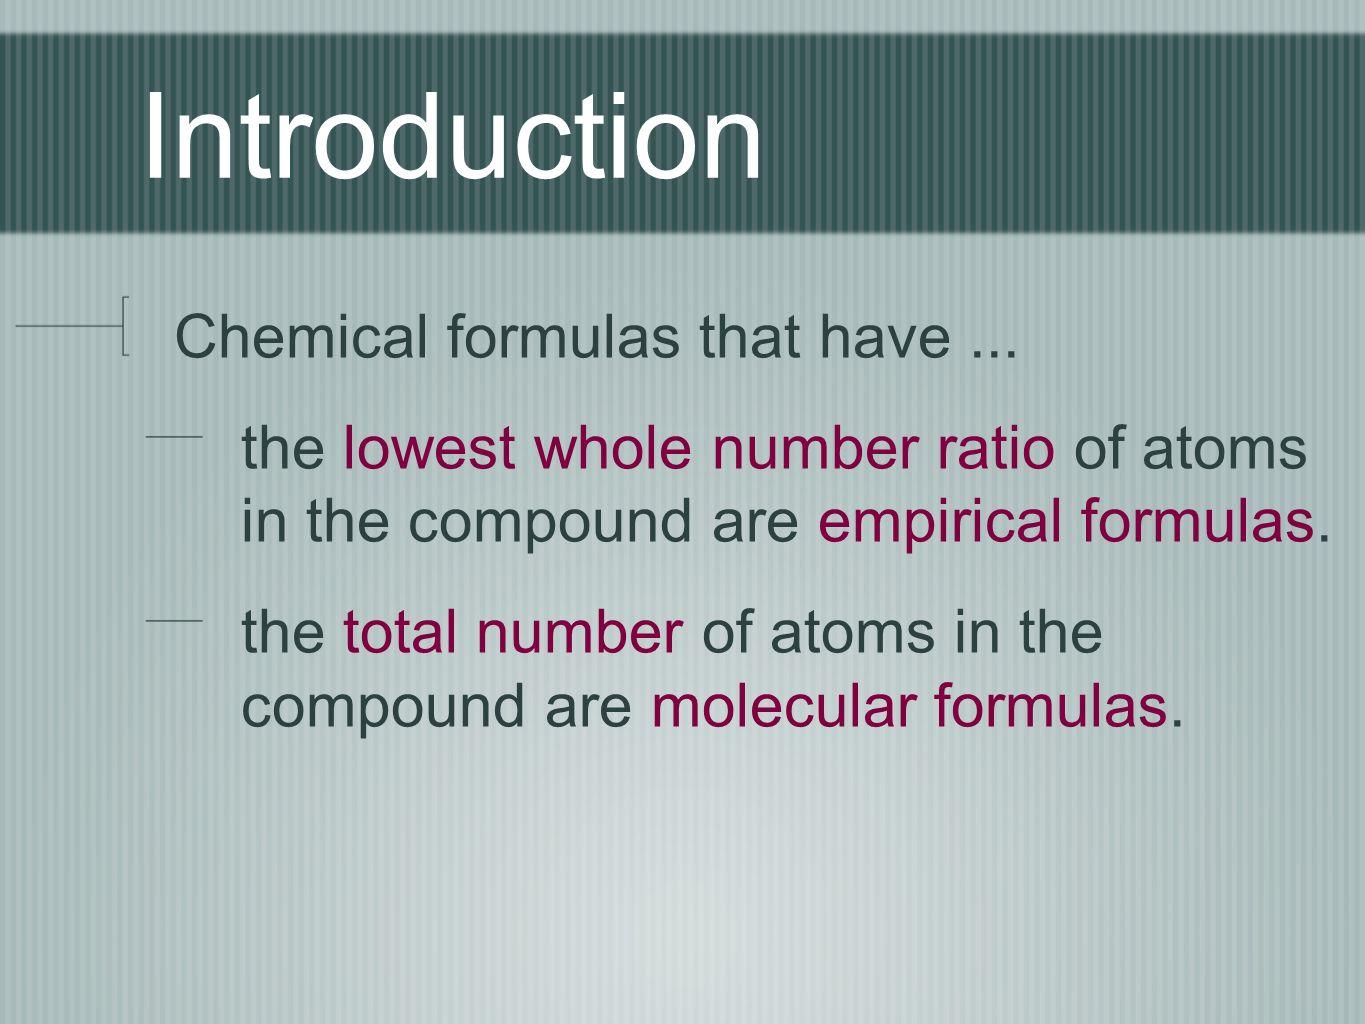 Introduction Chemical formulas that have...